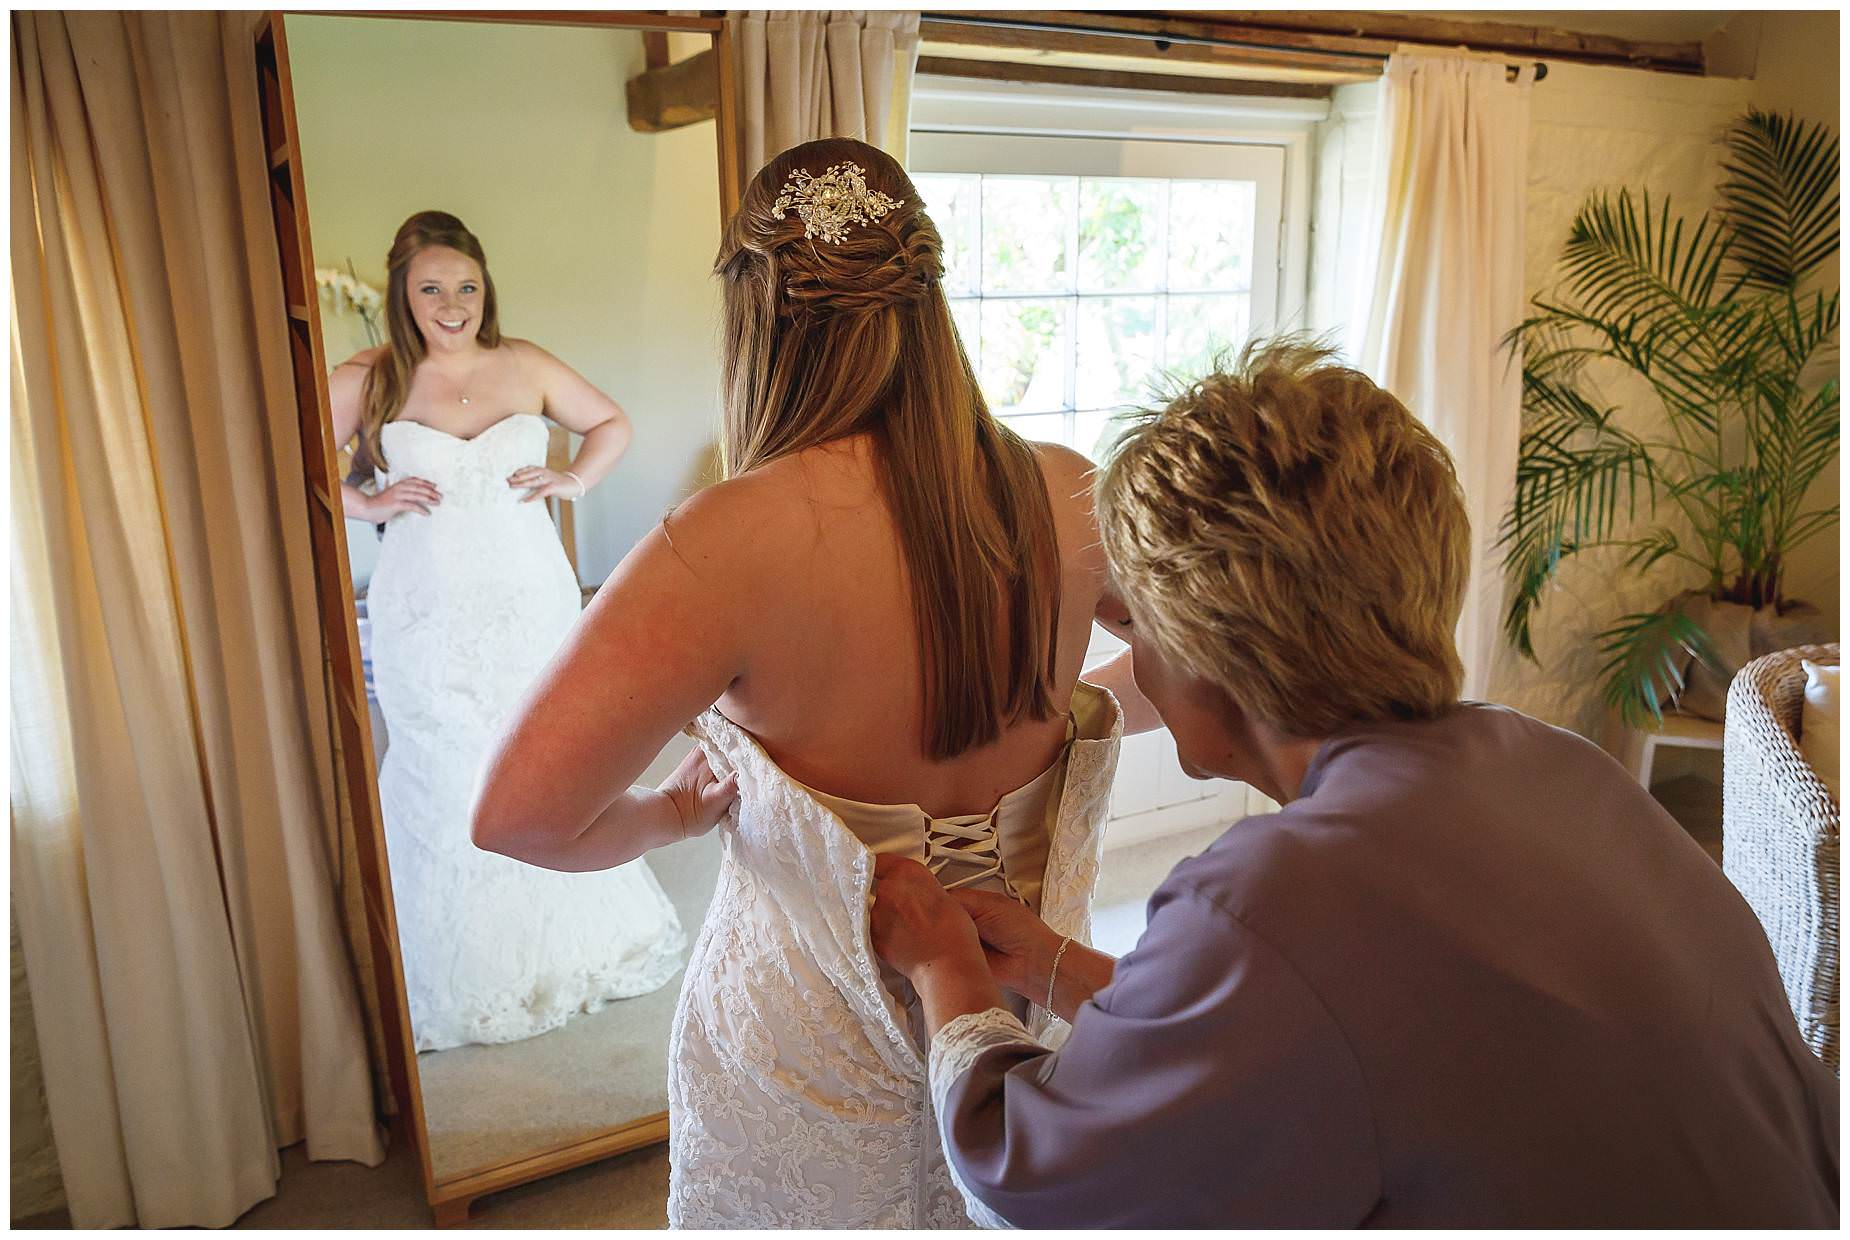 Mum helping with brides dress